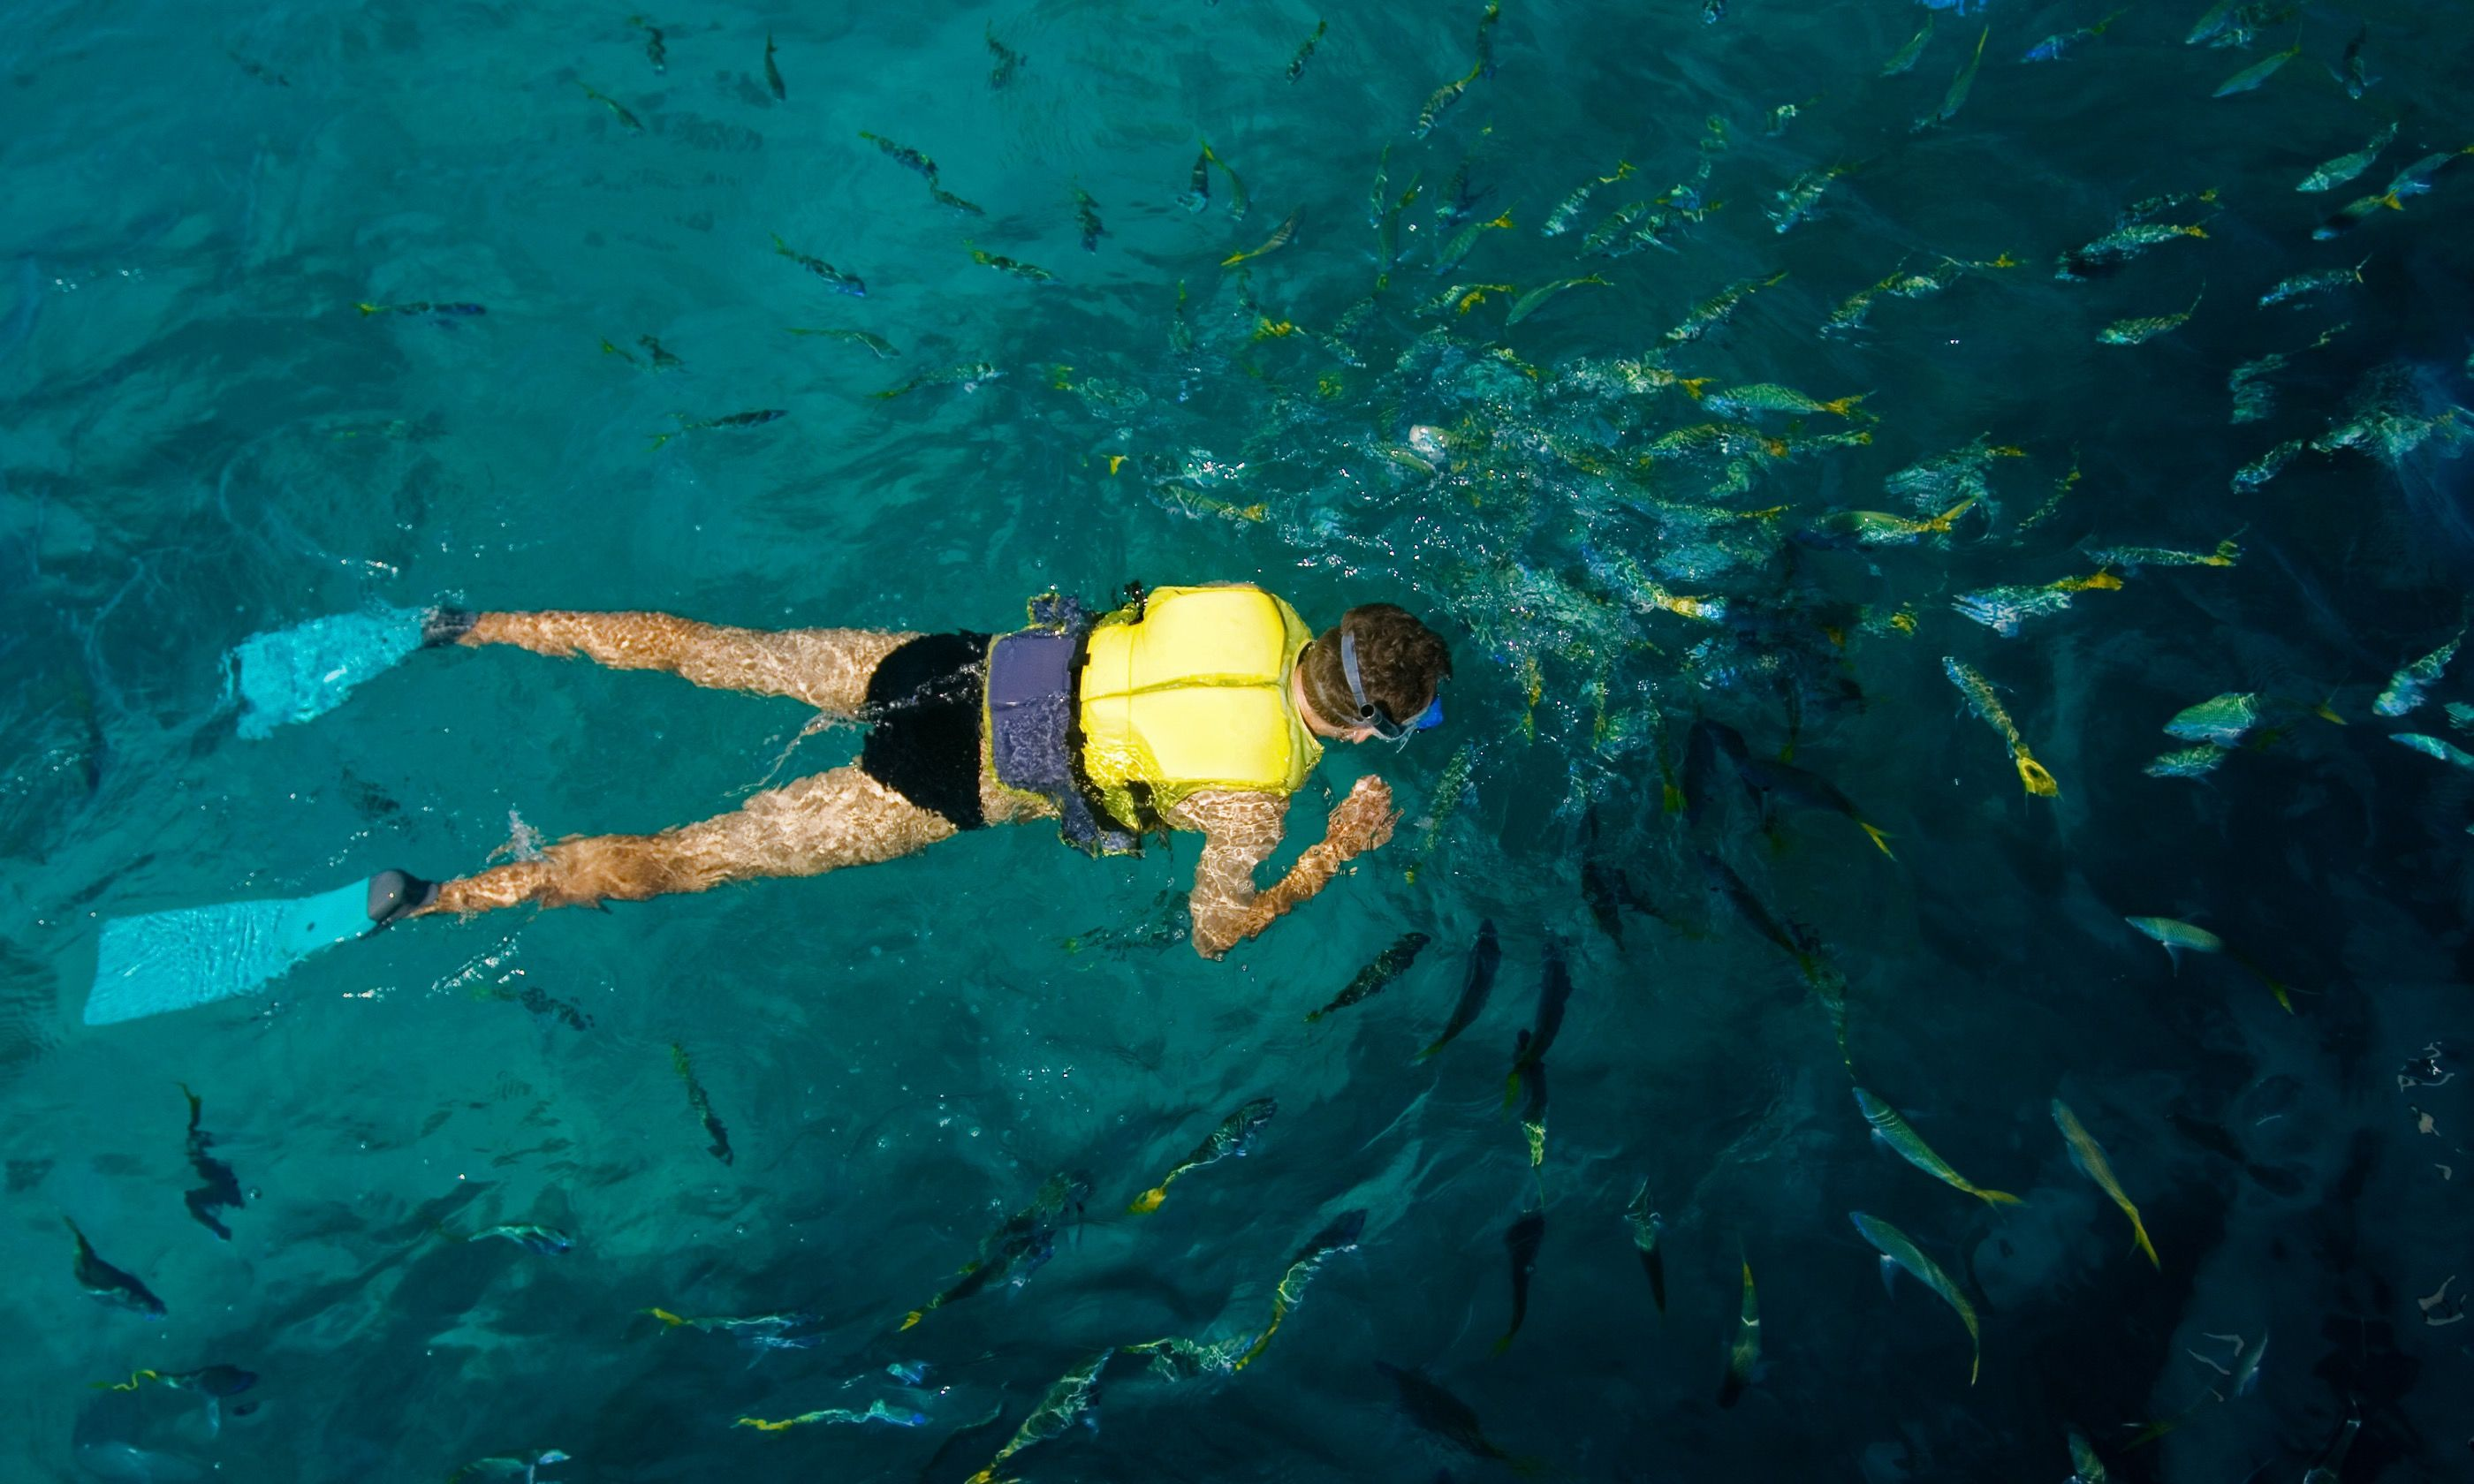 Snorkelling on the Great Barrier Reef (Shutterstock.com)